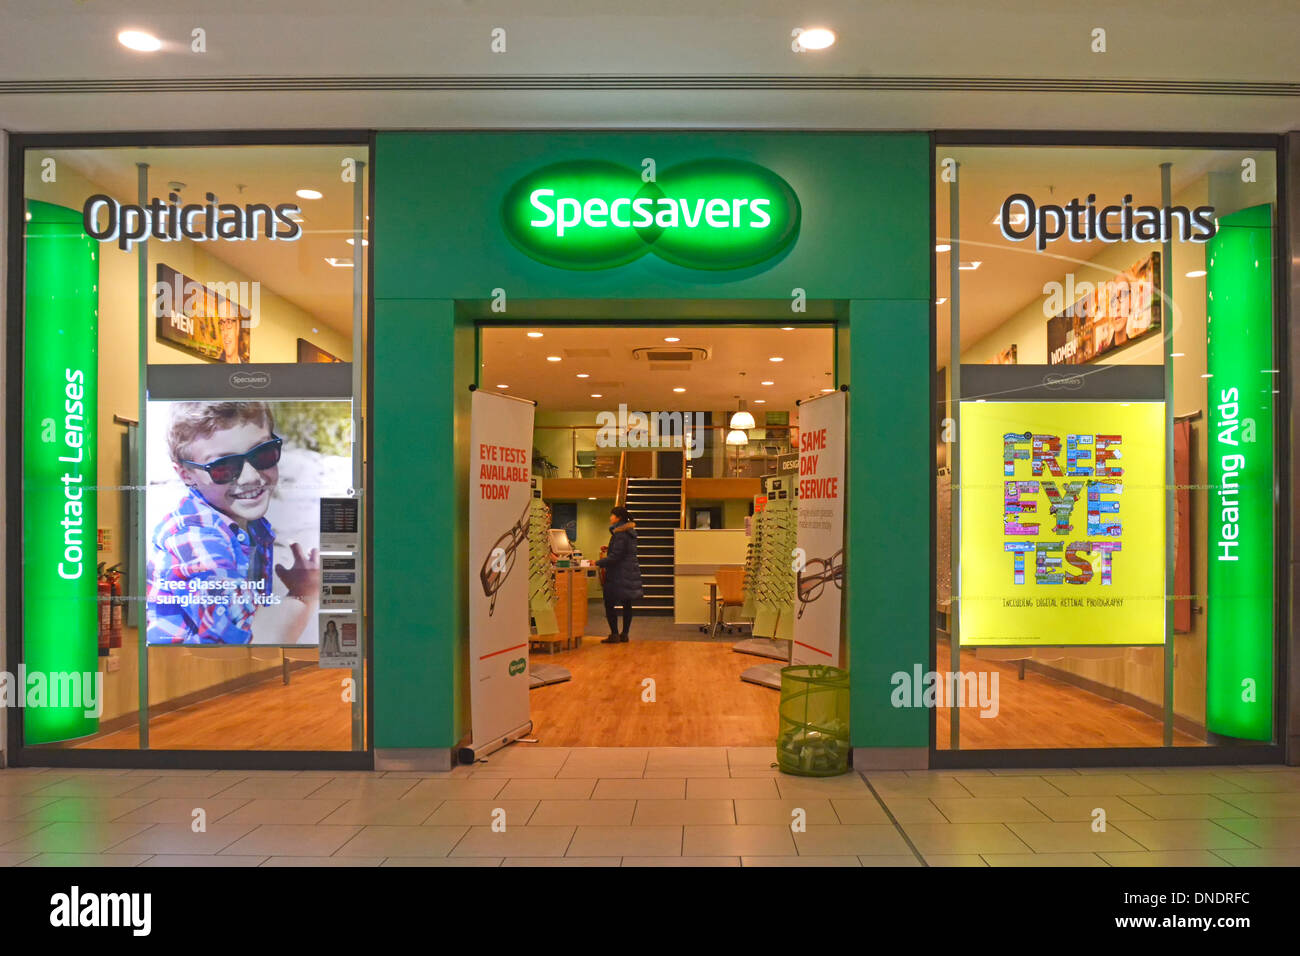 specsavers opticians shop front in shopping mall stock photo specsavers opticians shop front in shopping mall